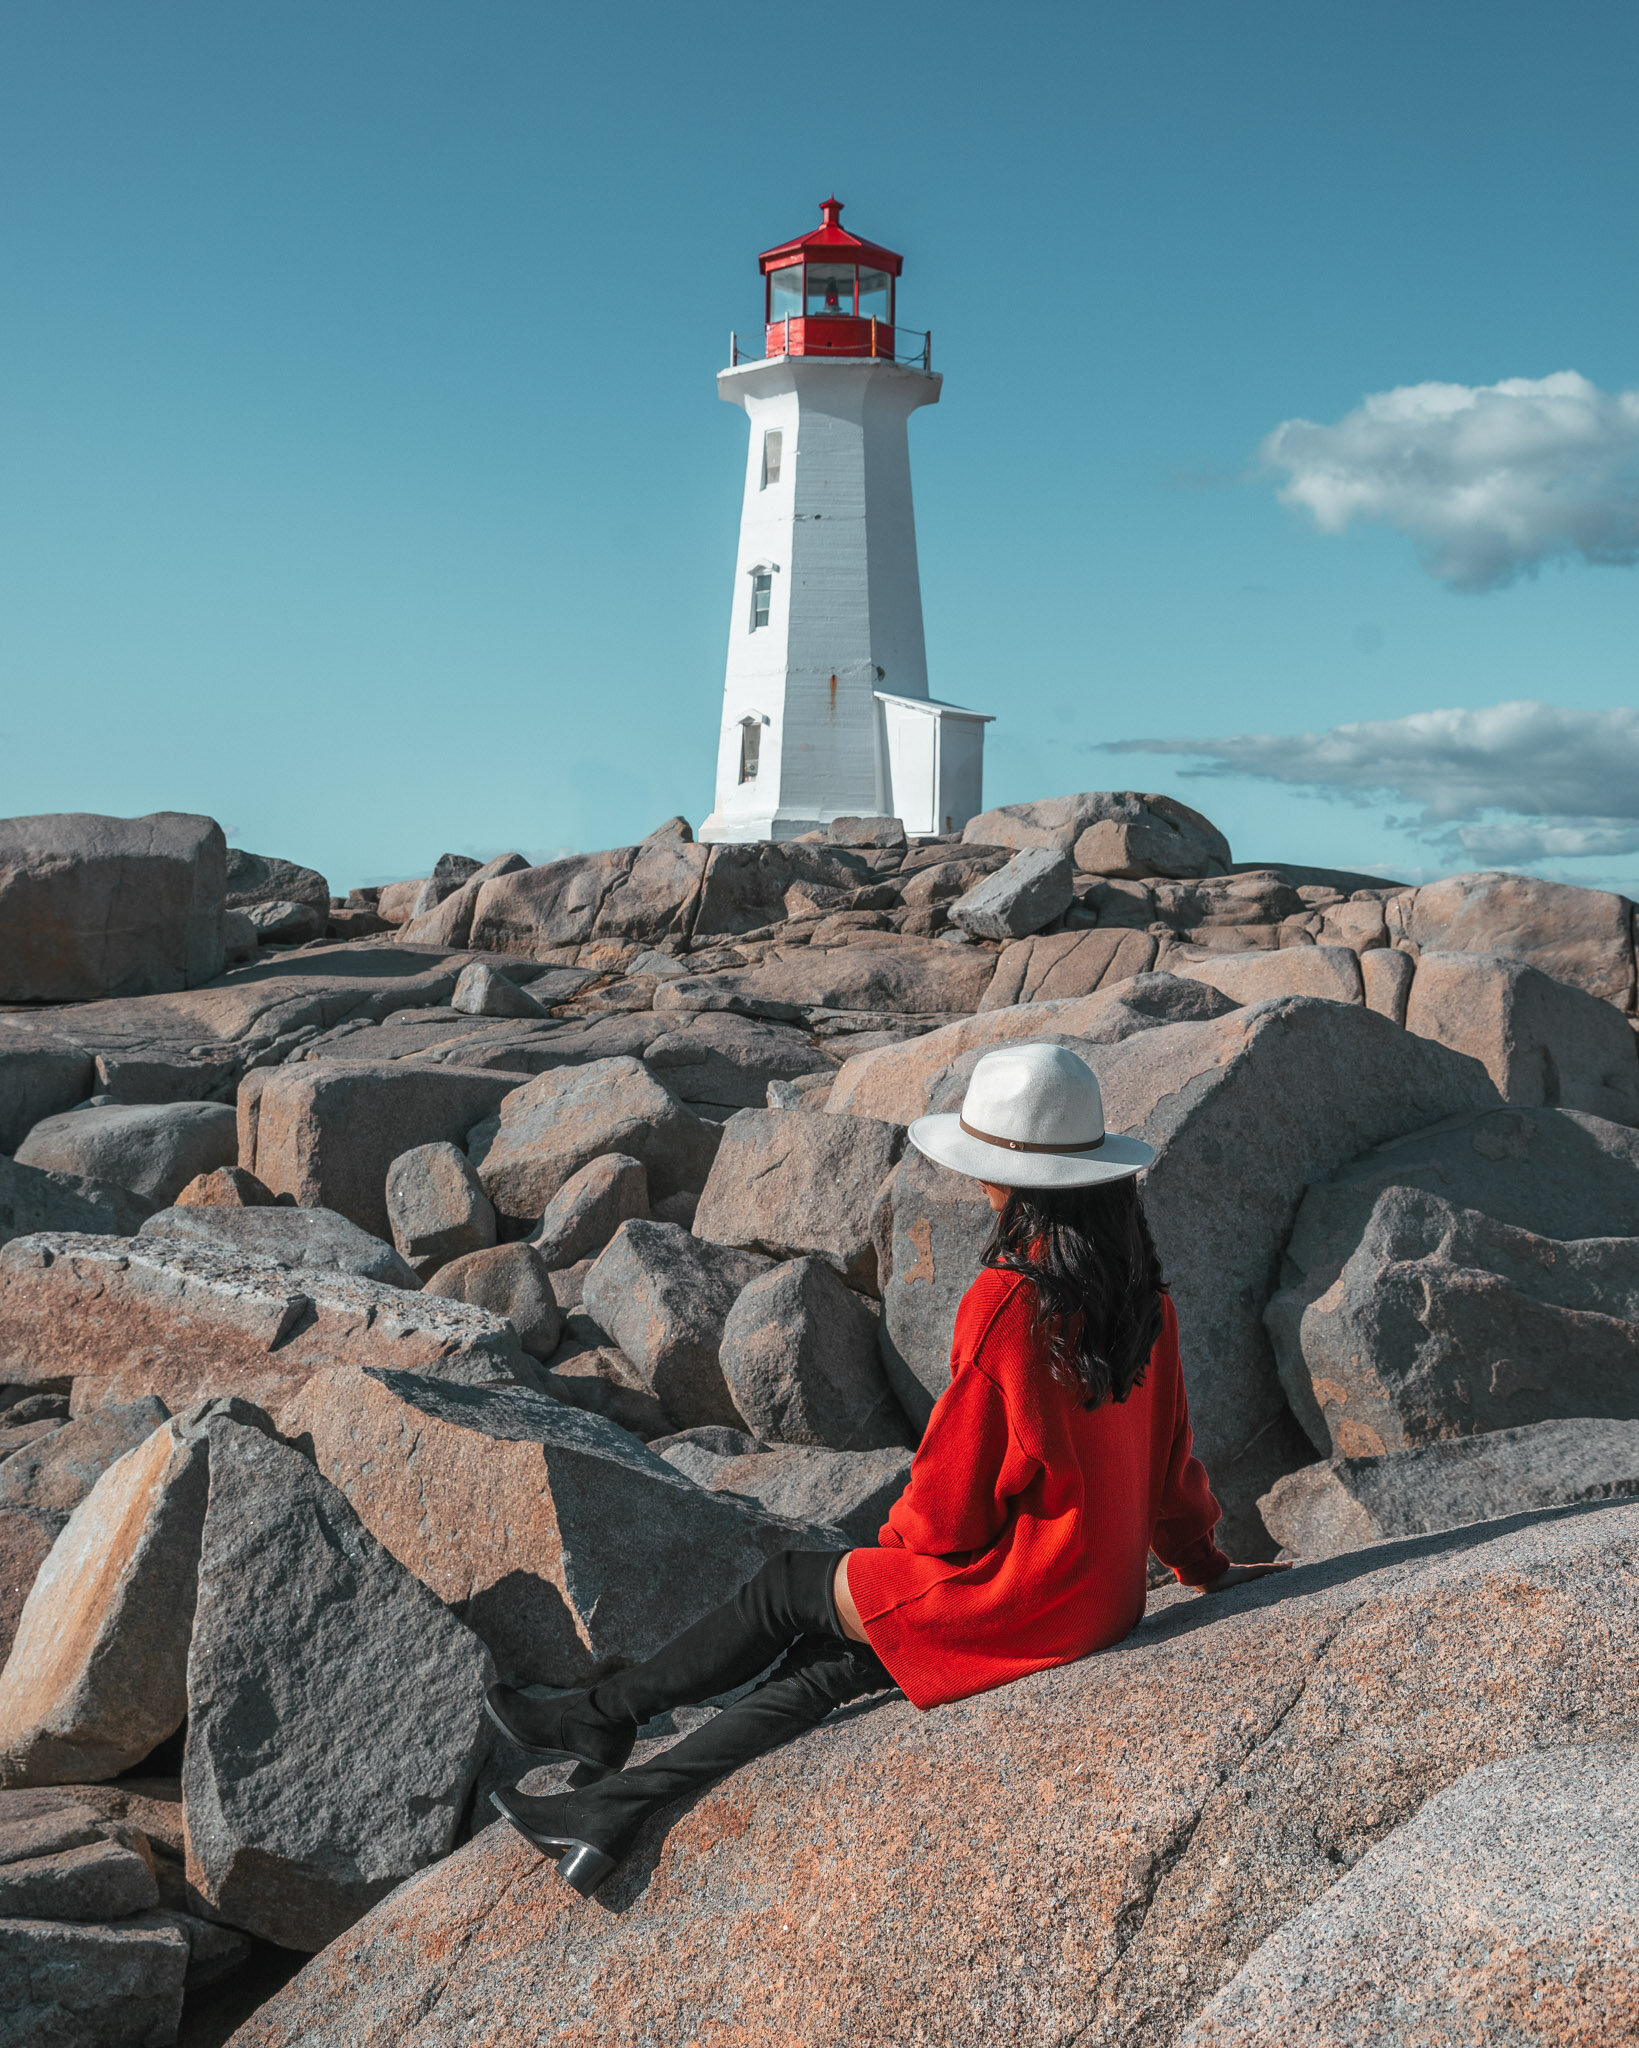 Peggy's Cove Lighthouse in Nova Scotia // Cruise Review: 11-Day New England & Canada on the Seabourn Quest // #readysetjetset #cruise #luxury #travel #cruising #canada #halifax